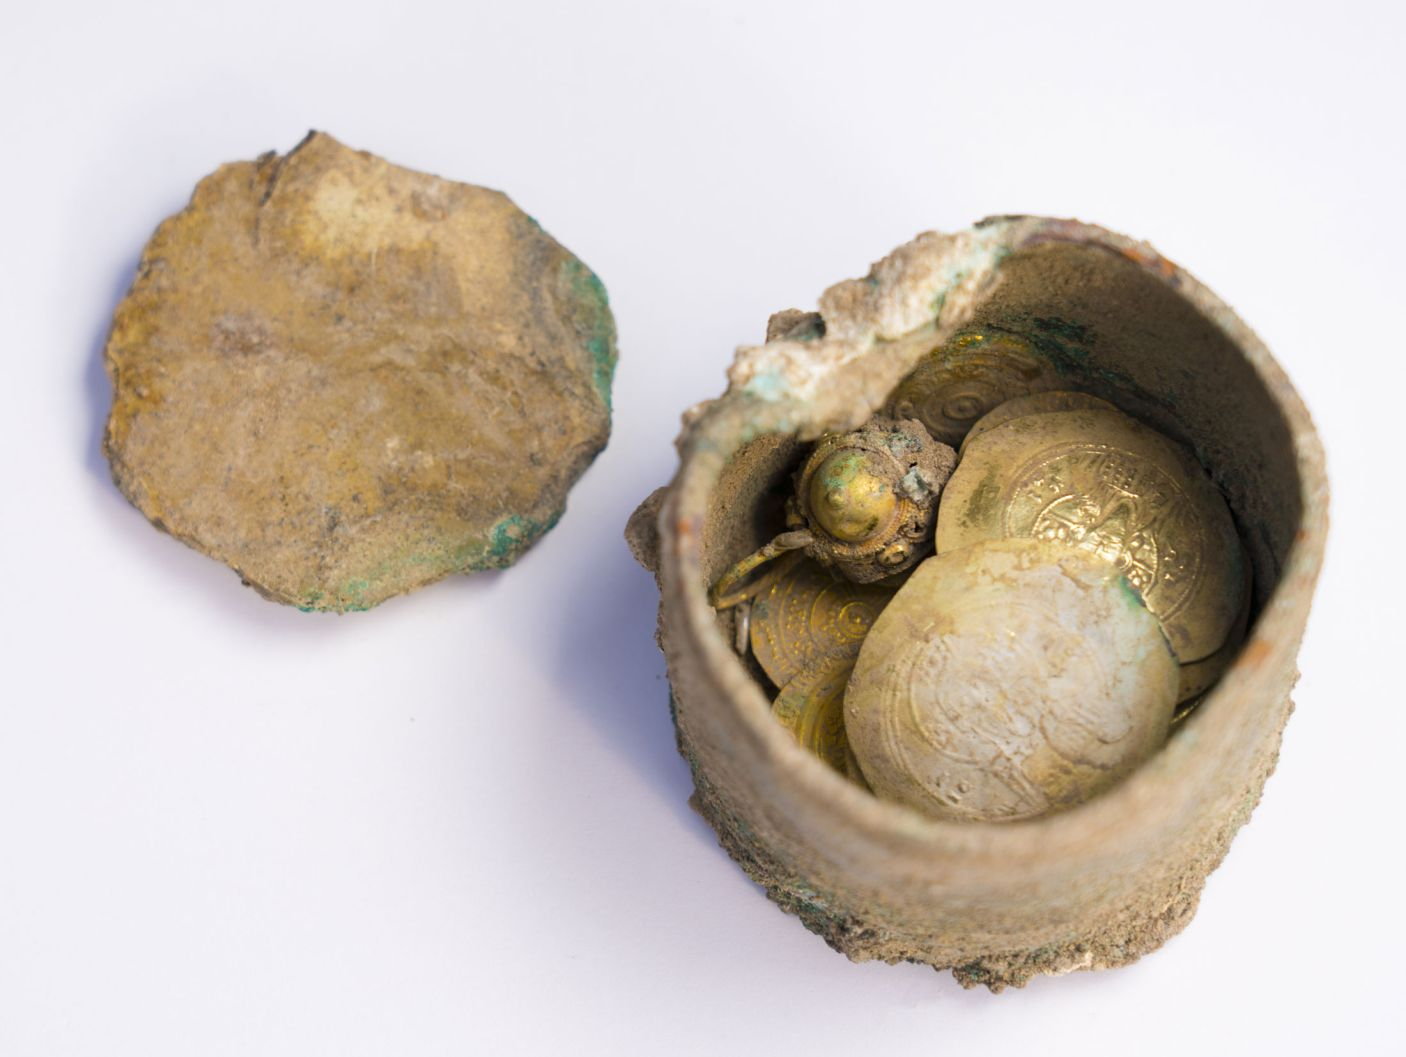 900-year-old treasure hoard discovered in Caesarea Israel.